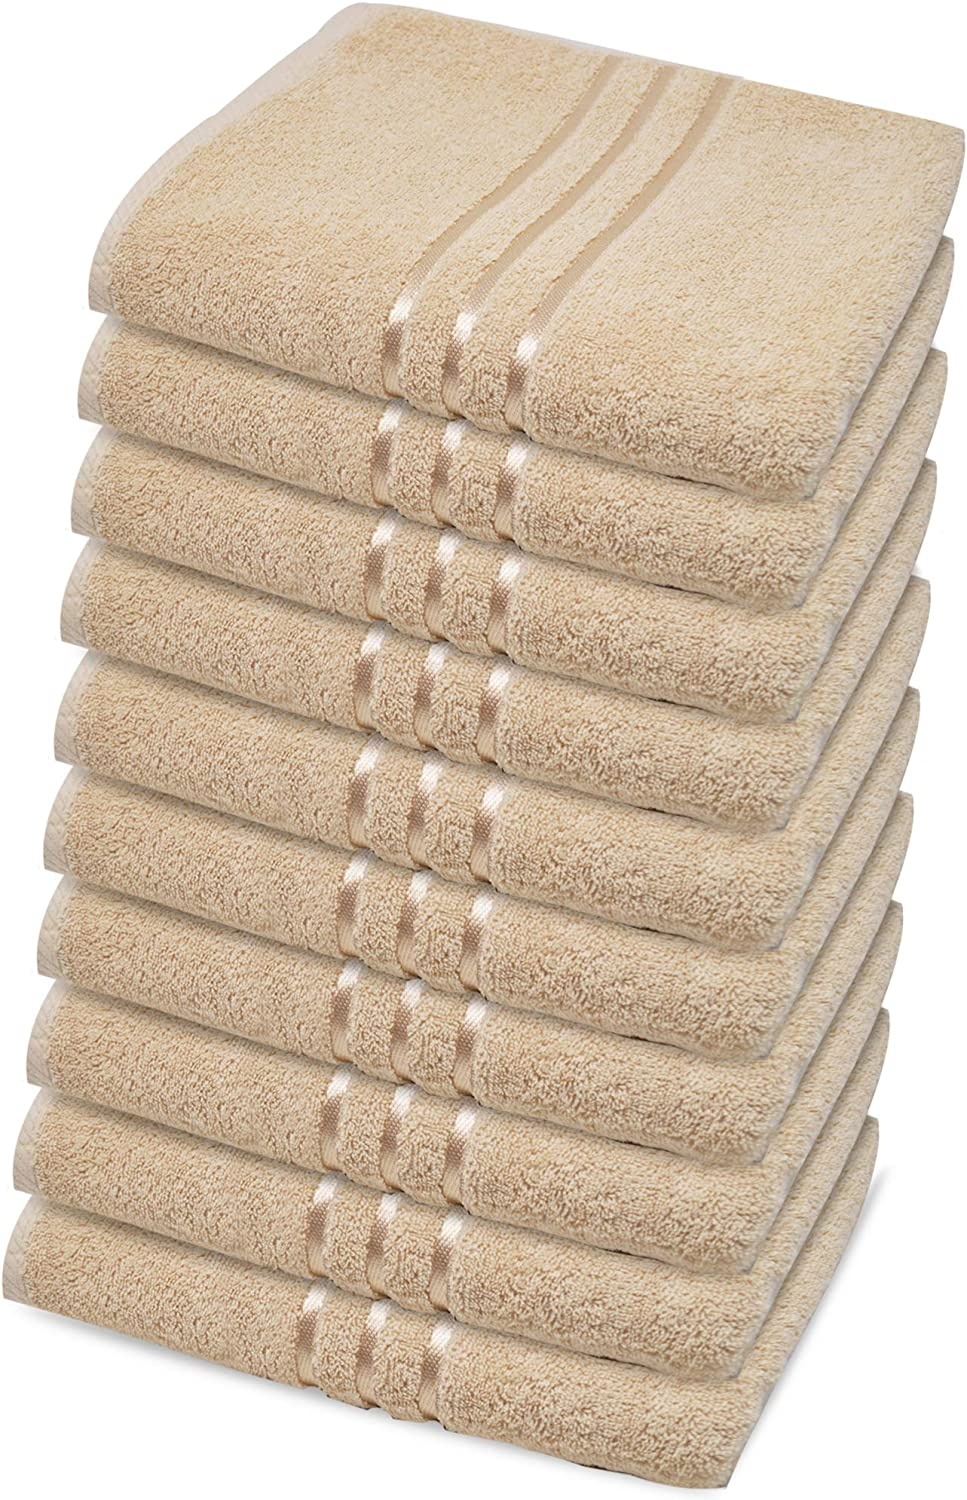 Hand White, Pack of 4 Face Gym and Spa 50x81cm Towelogy/® 100/% Egyptian Cotton Hand Towel Set 500 GSM Ultra-Soft and Absorbent Multipurpose Use for Bath